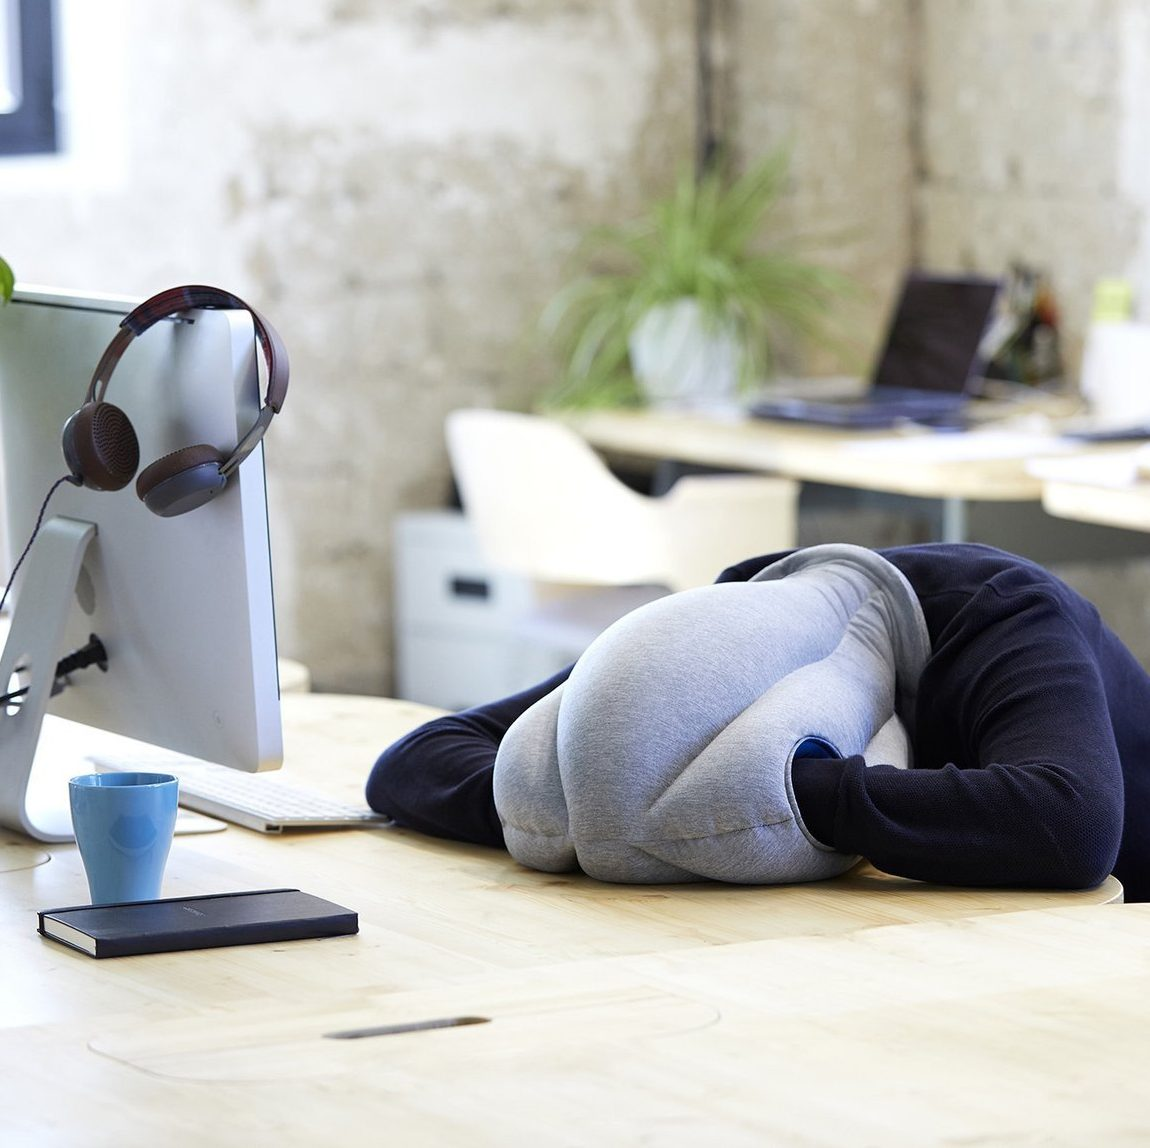 funny ostrich pillow is a great workaholic gift that allows for naps at work